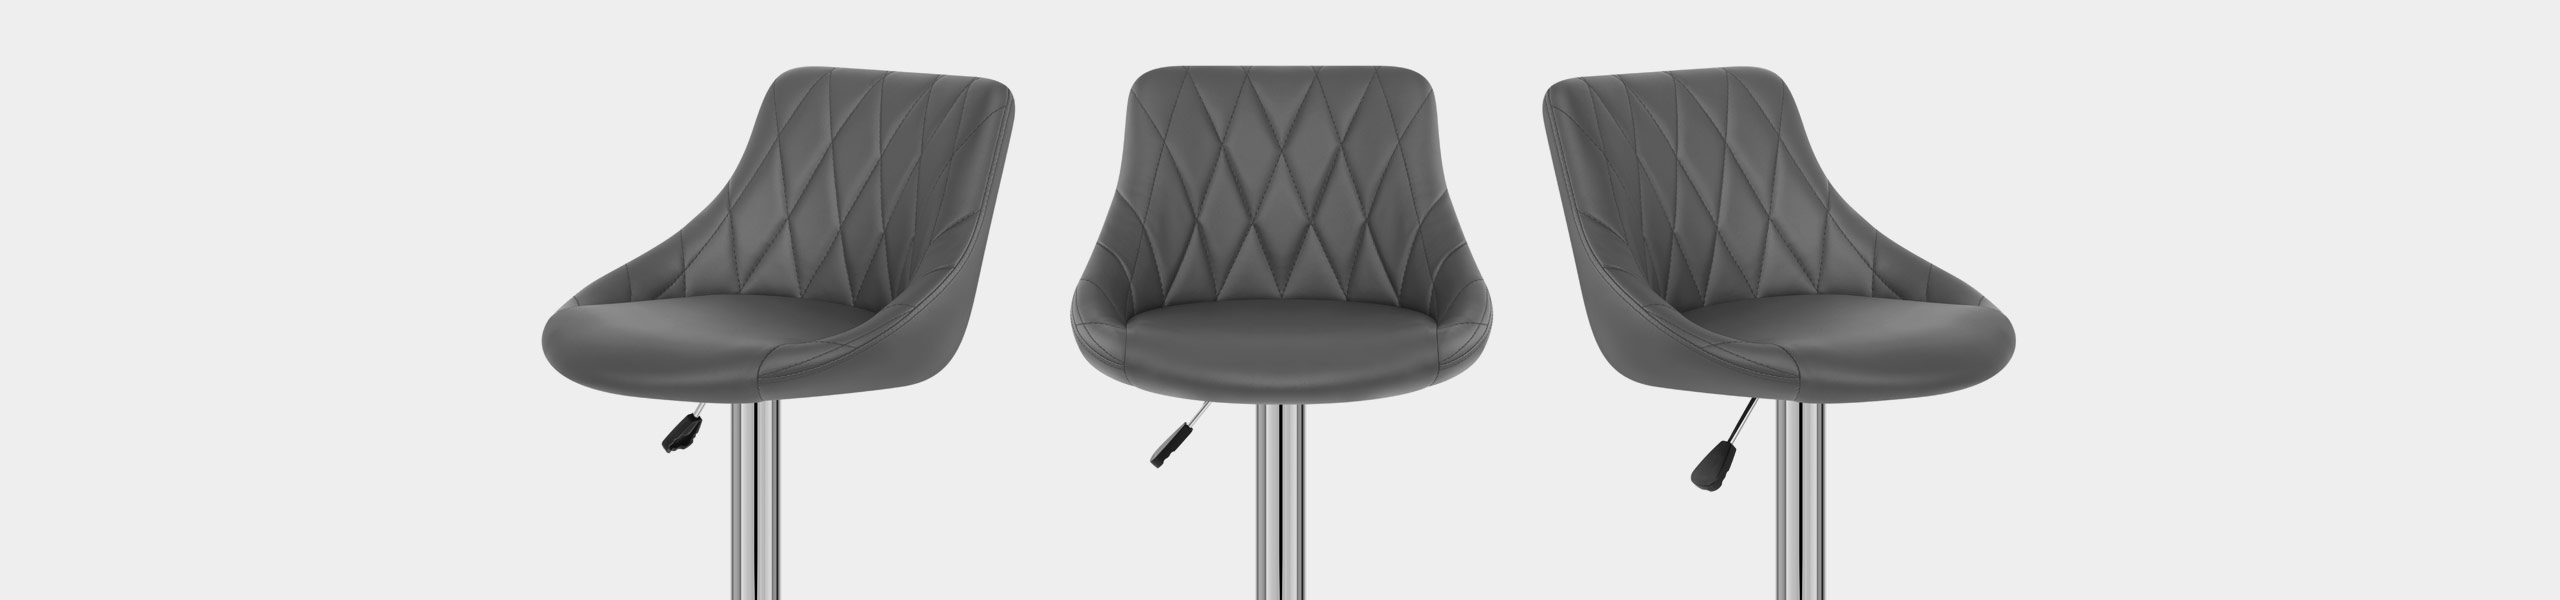 Stitch Bar Stool Grey Video Banner